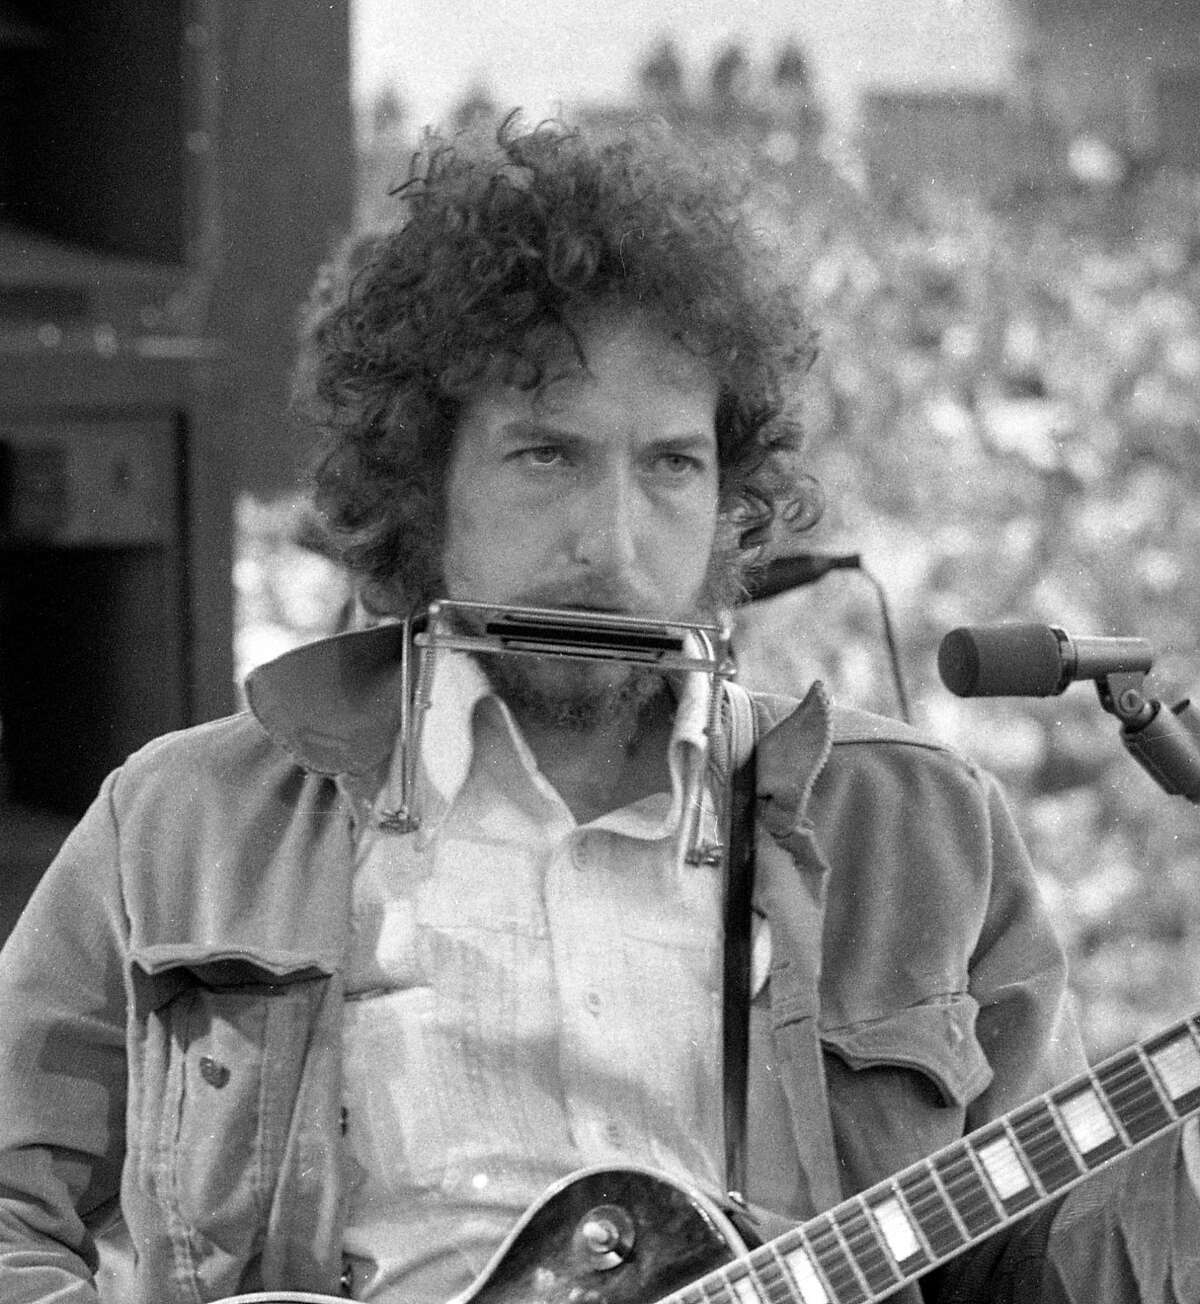 March 23, 1975: Bob Dylan makes a surprise appearance at the SNACK concert, a Kezar Stadium benefit organized by Bill Graham to save San Francisco high school sports. The benefit included performances by Jerry Garcia and Carlos Santana and appearances by Marlon Brando and Willie Mays.